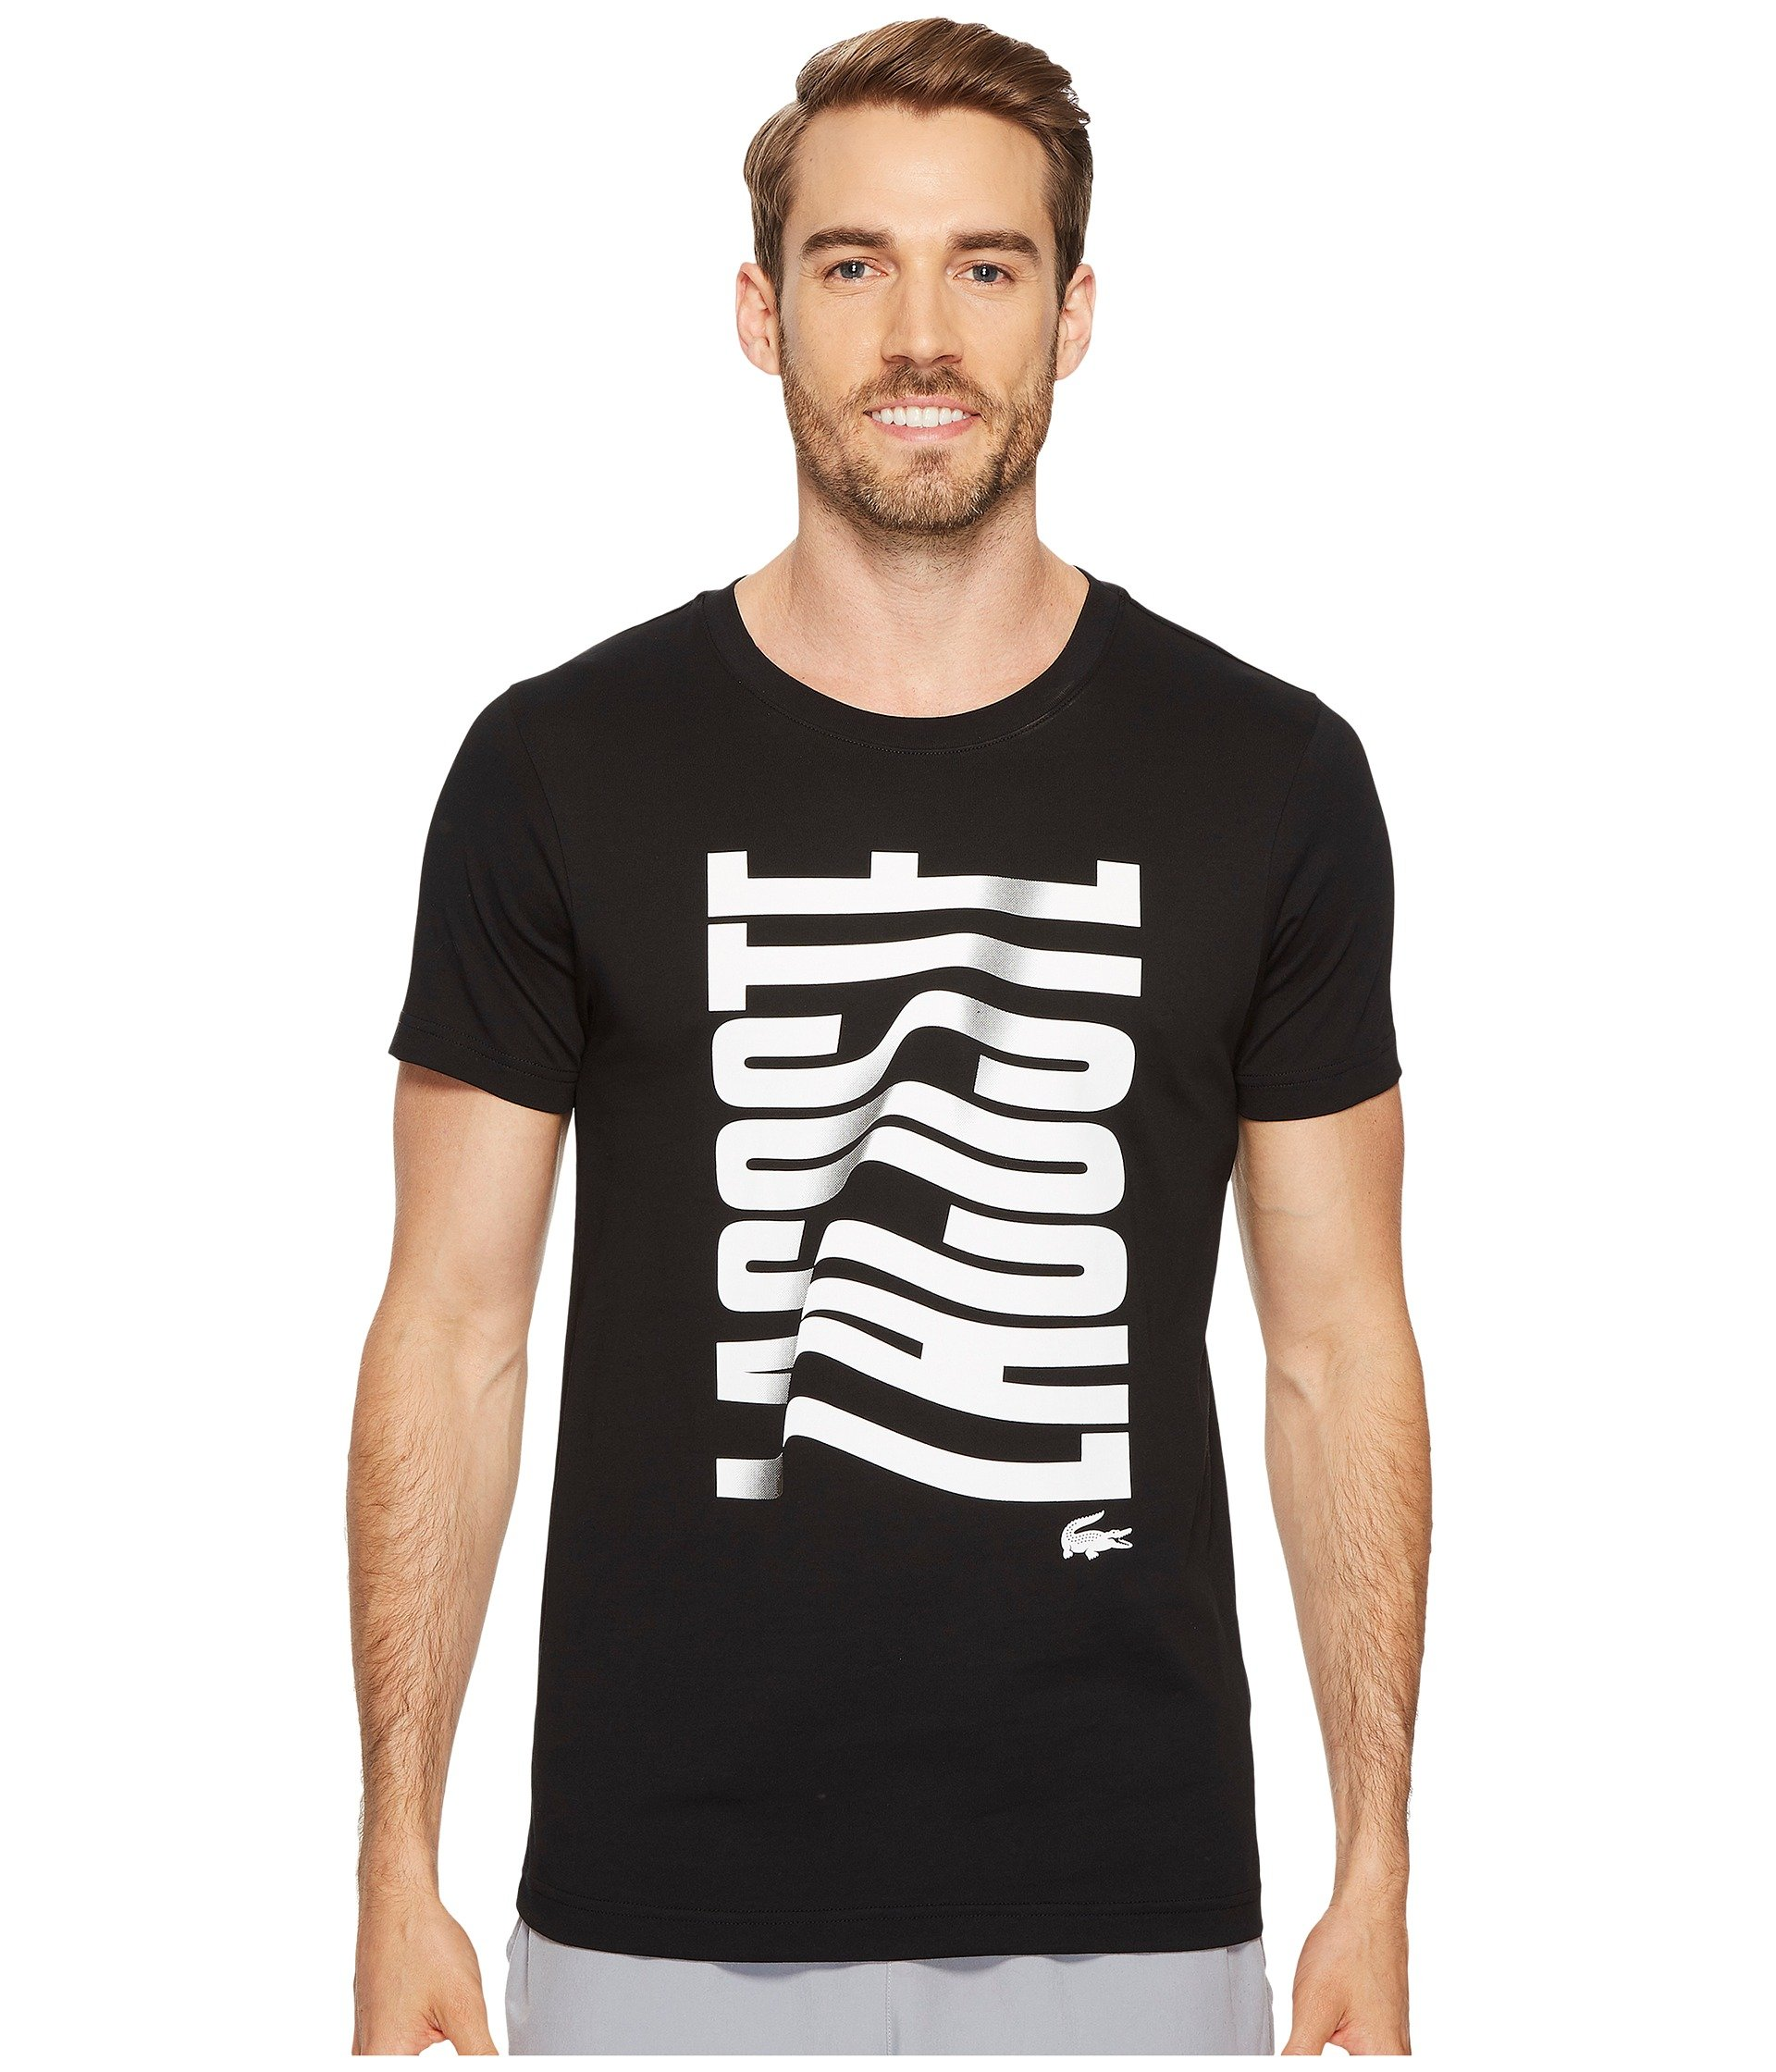 Lacoste short sleeve vertical lacoste graphic t shirt at 6pm for Short sleeve lacoste shirt